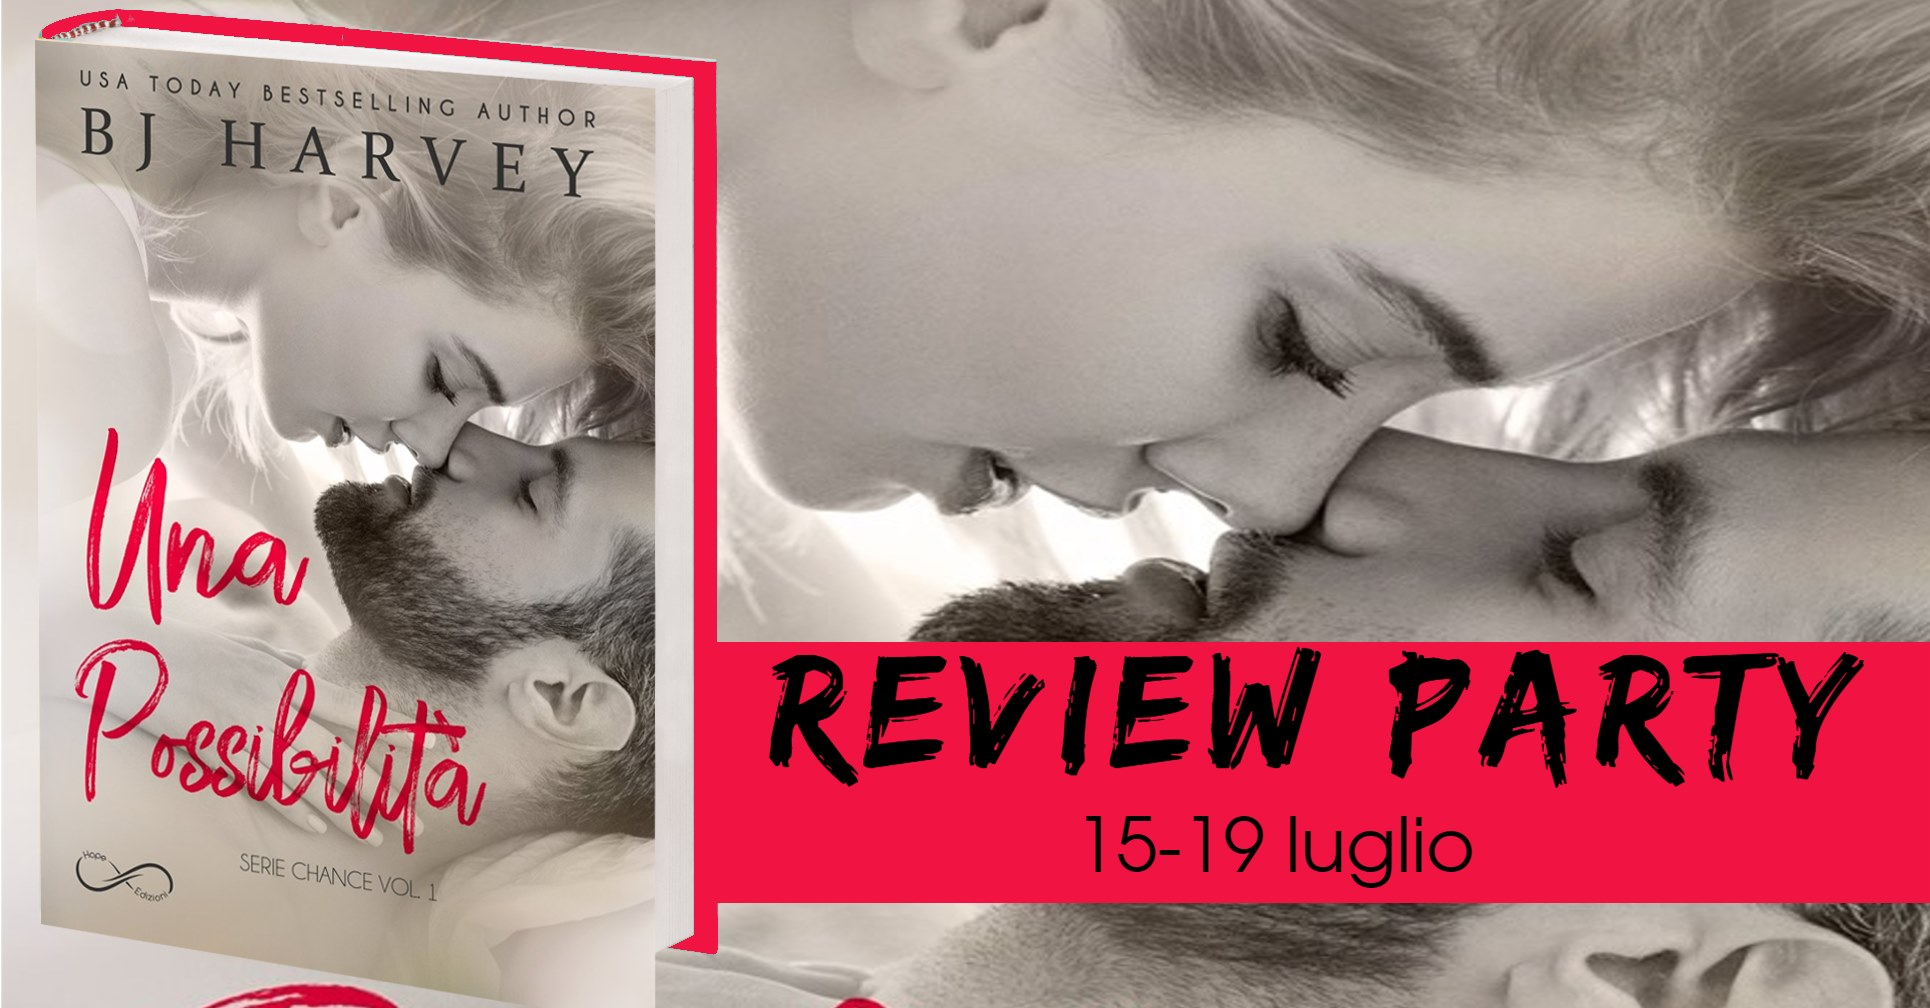 Una Possibilità di B.J. Harvey recensione atrendyexperience review party